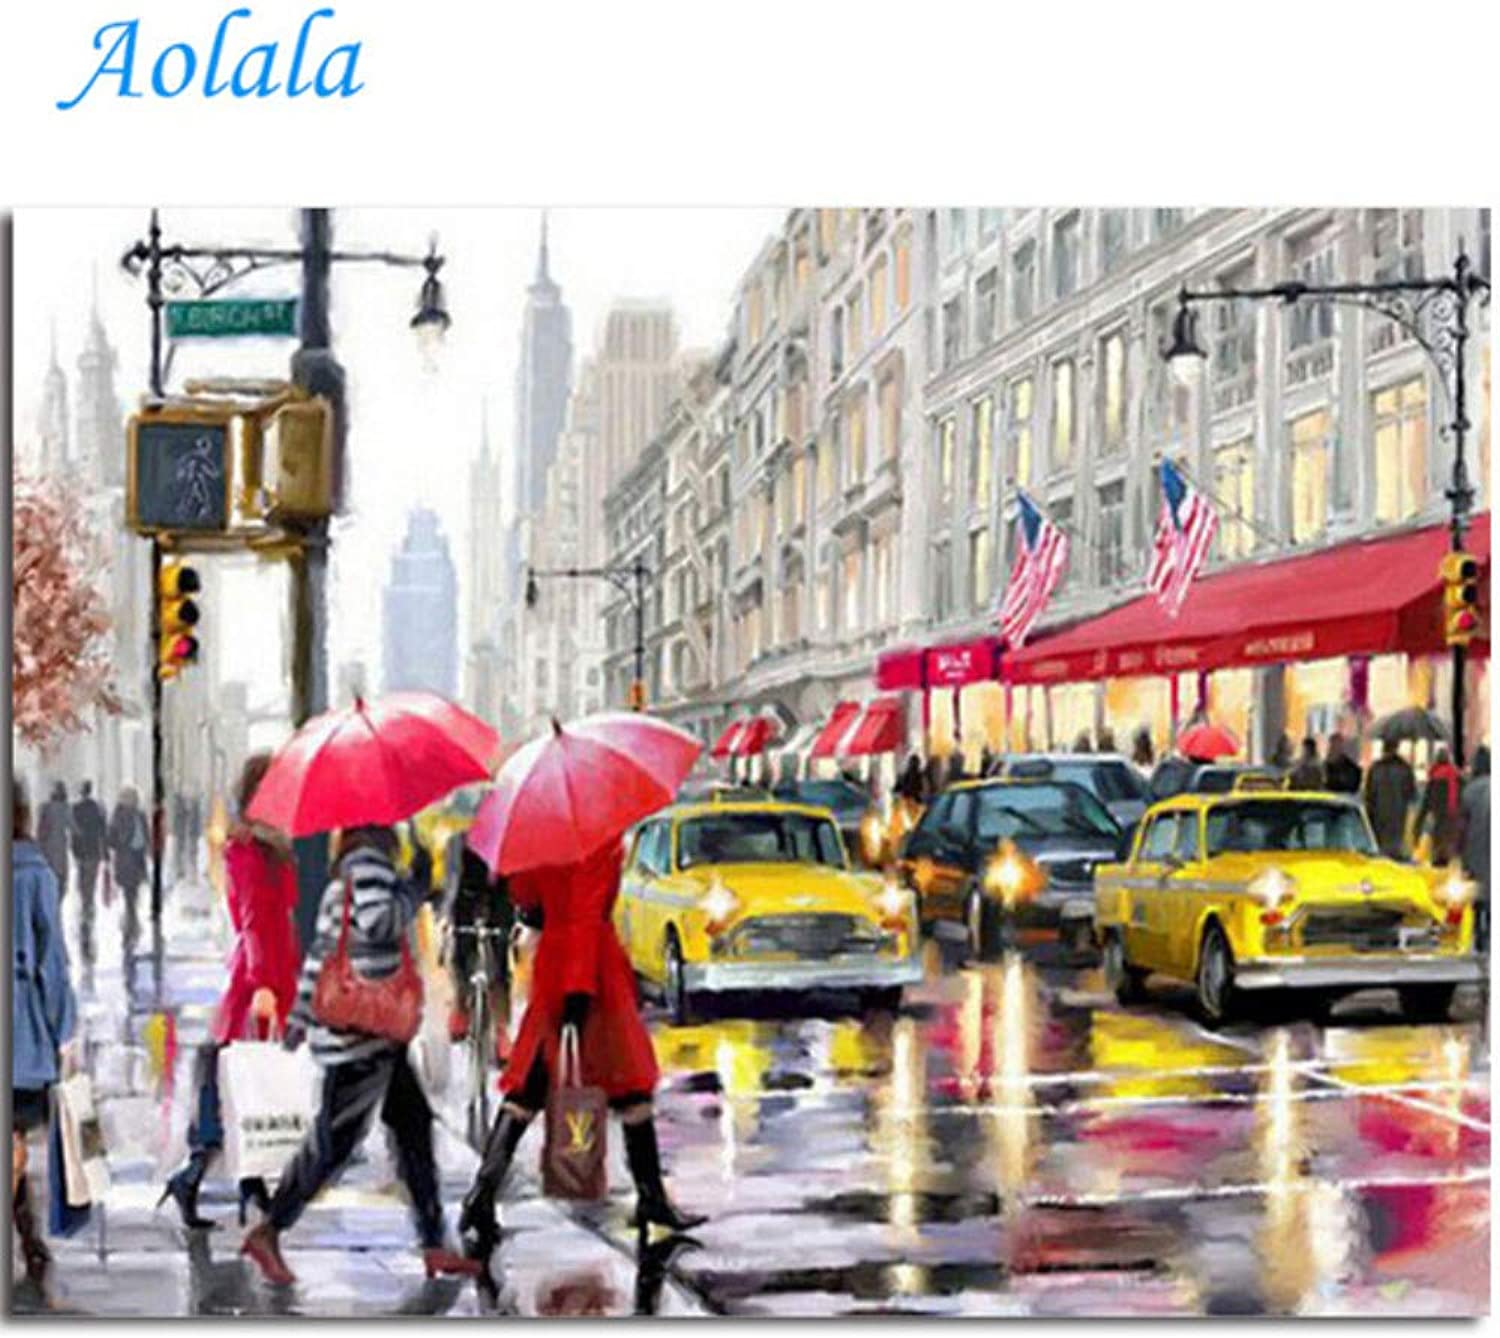 Red Umbrella Street Couple Picture Oil Painting Paintng by Numbers Canvas Painting Home Decor Wall Art,60x75cm